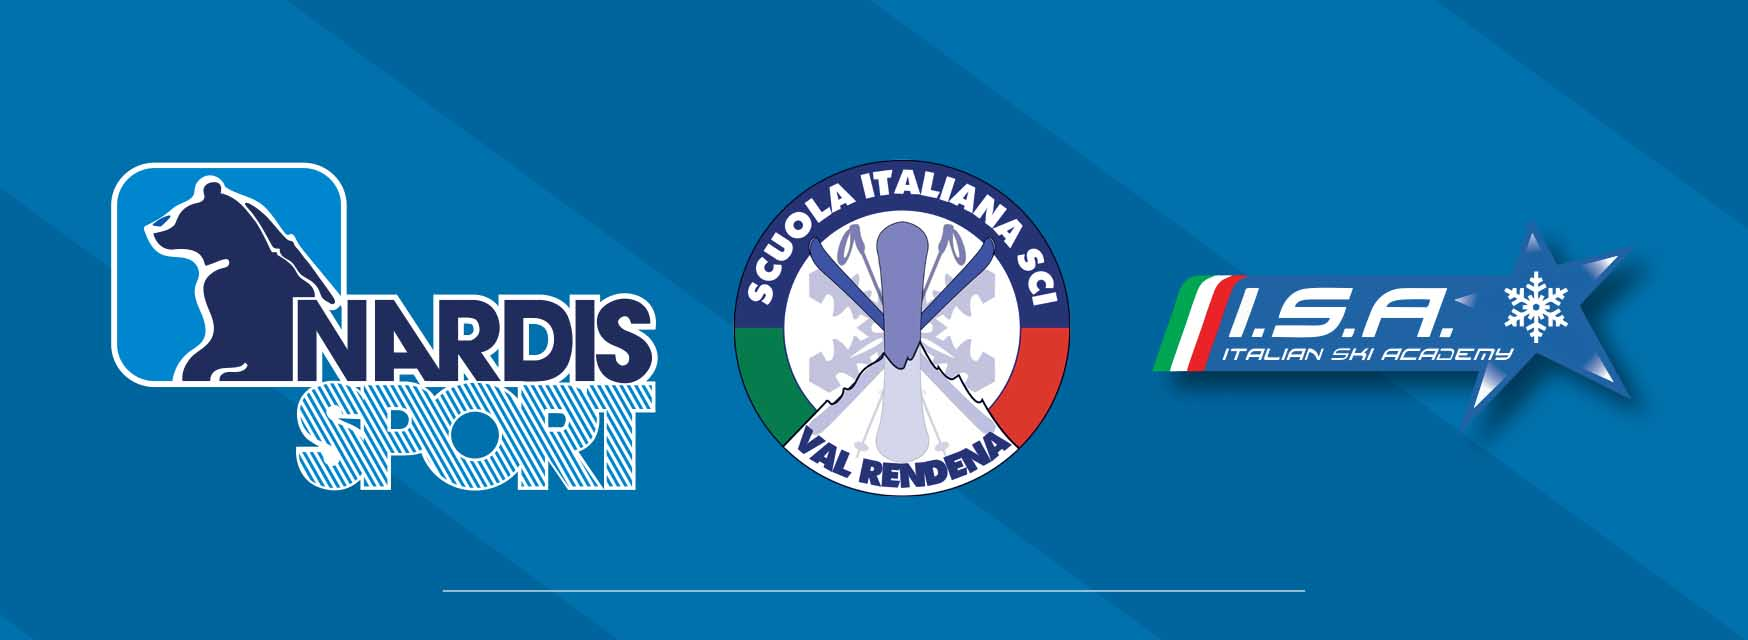 Inauguration of the Italian ski school Val Rendena